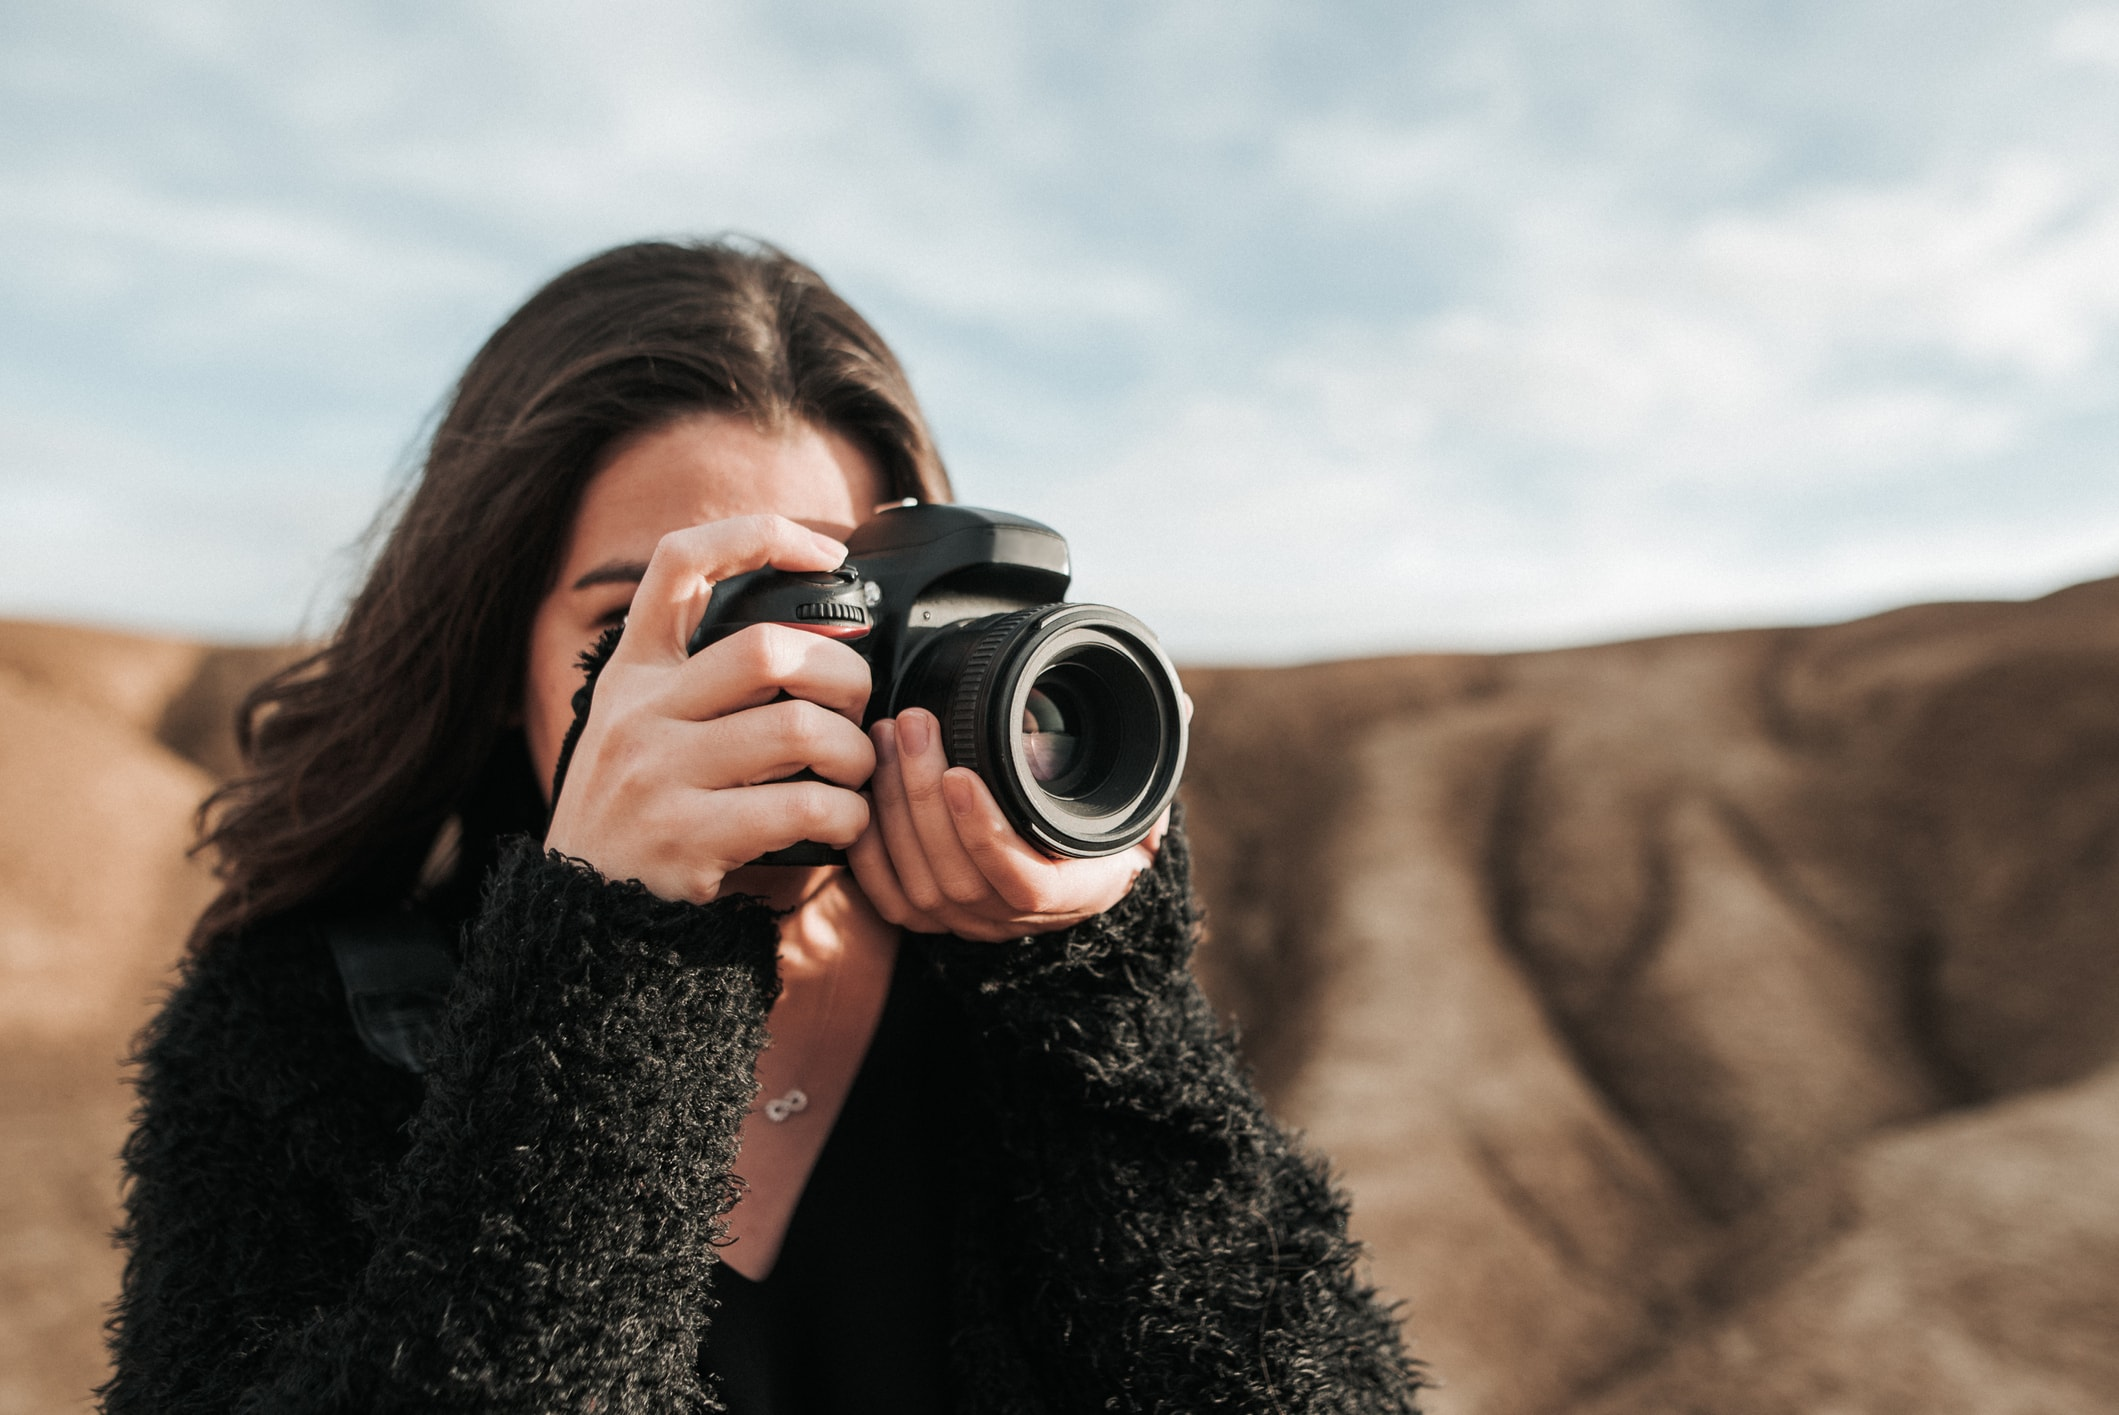 Image of a girl taking a photograph with a DSLR camera in front of a rocky background